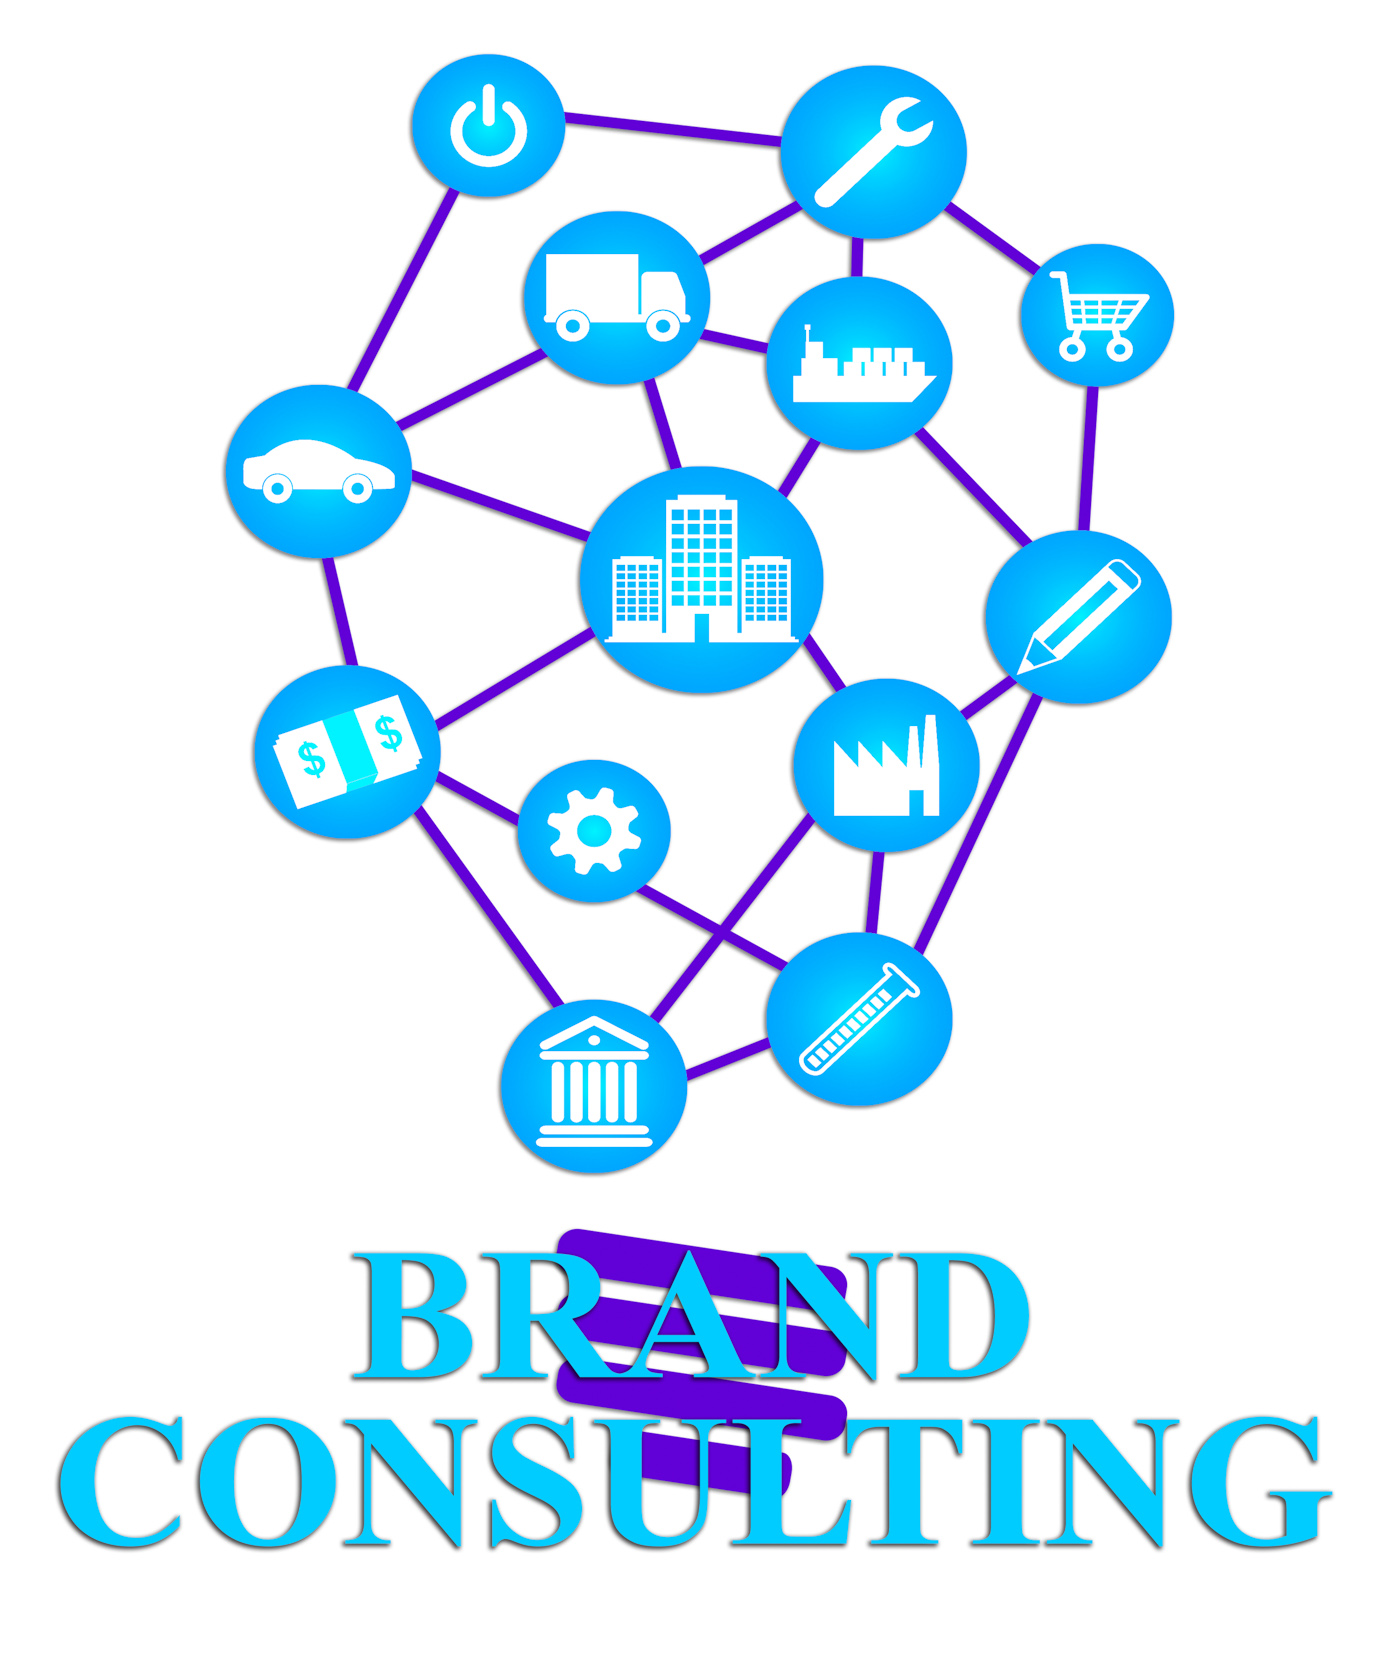 Brand consulting represents seek information and advice photo